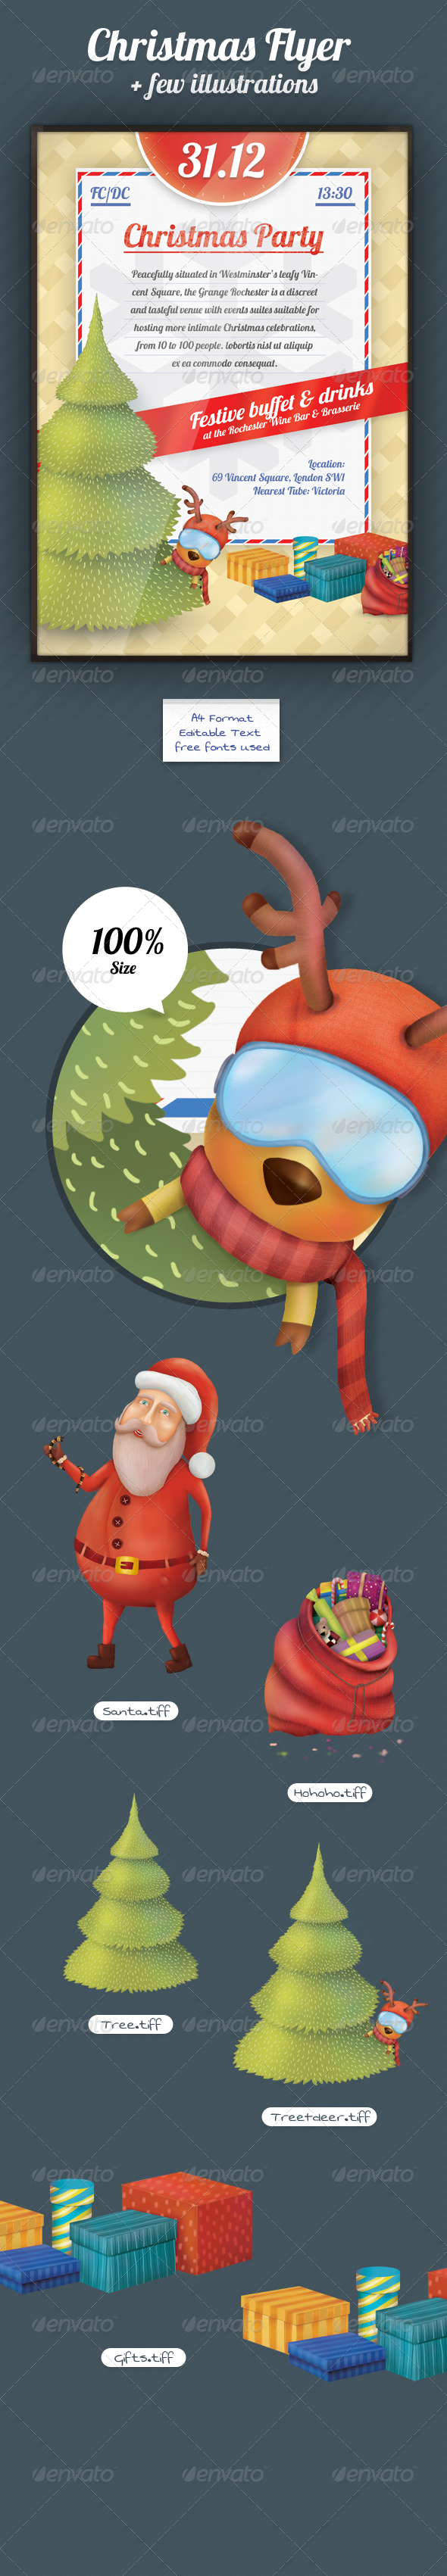 GraphicRiver Xmas Flyer & Mascot 3525298